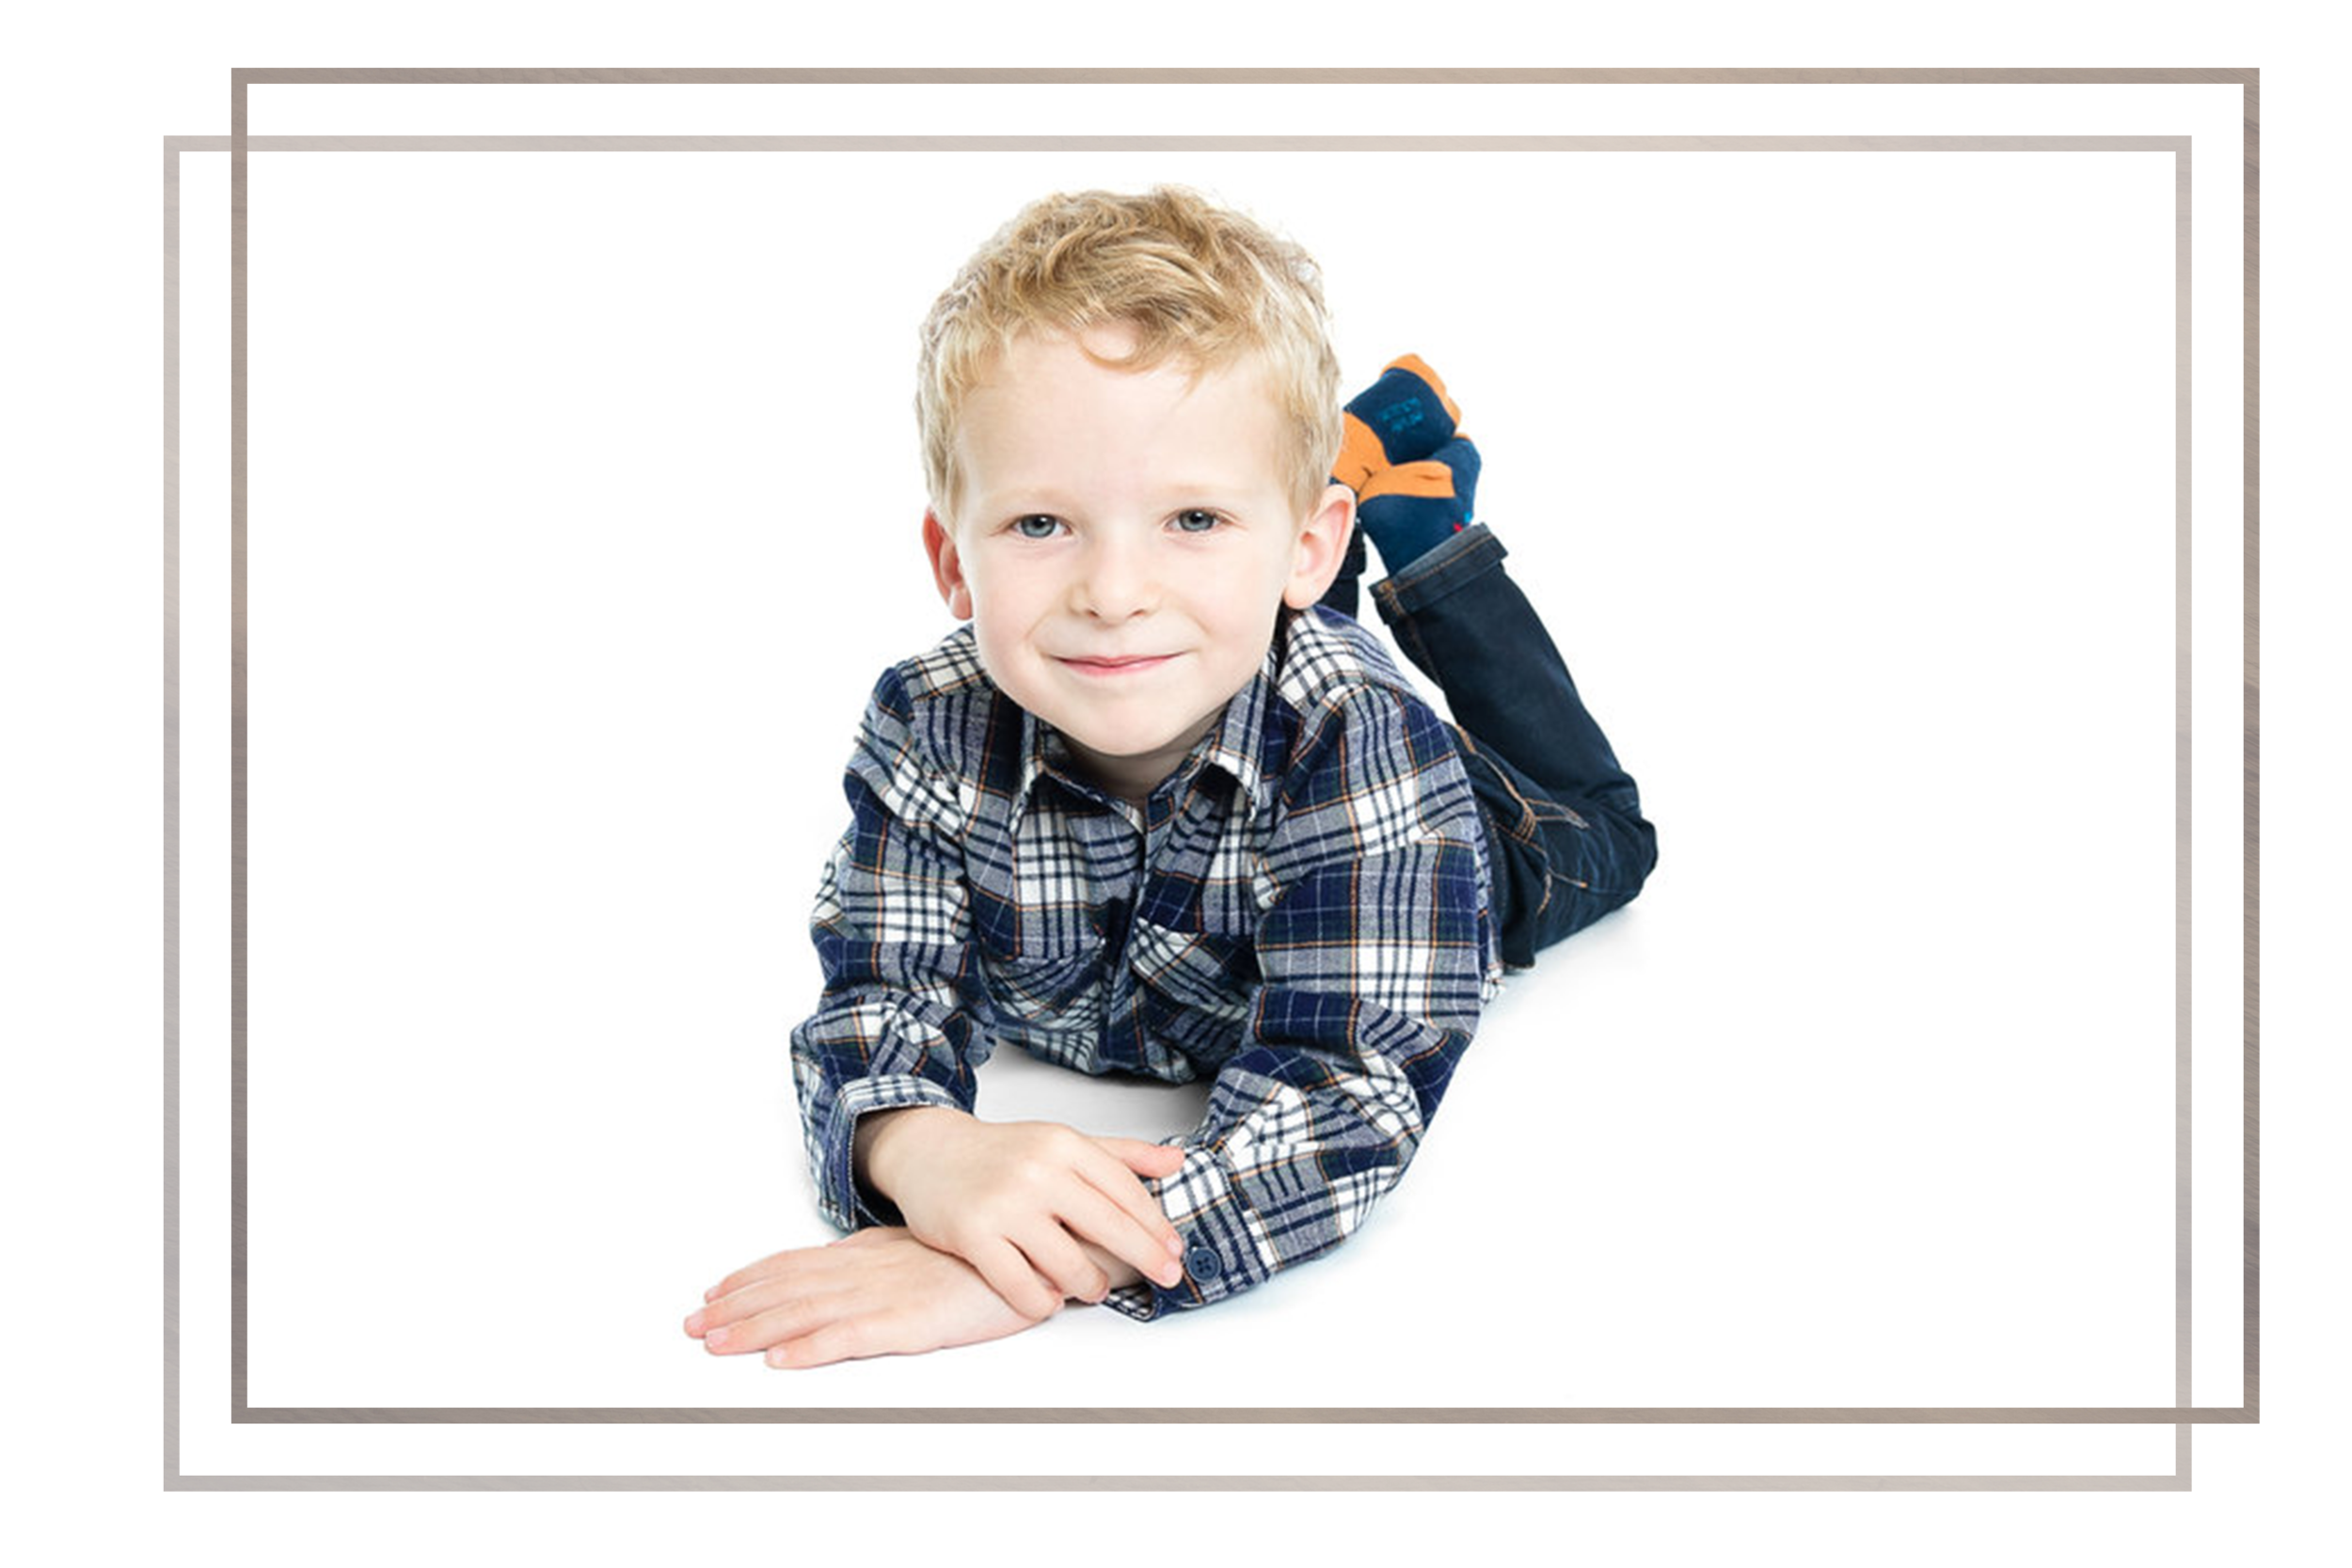 Studio sessions - All sessions are designed to be relaxed, fun and tailored to your family so don't forget your smiles. Together we can create traditional portraits and have some fun with children expressing themselves in their unique way.